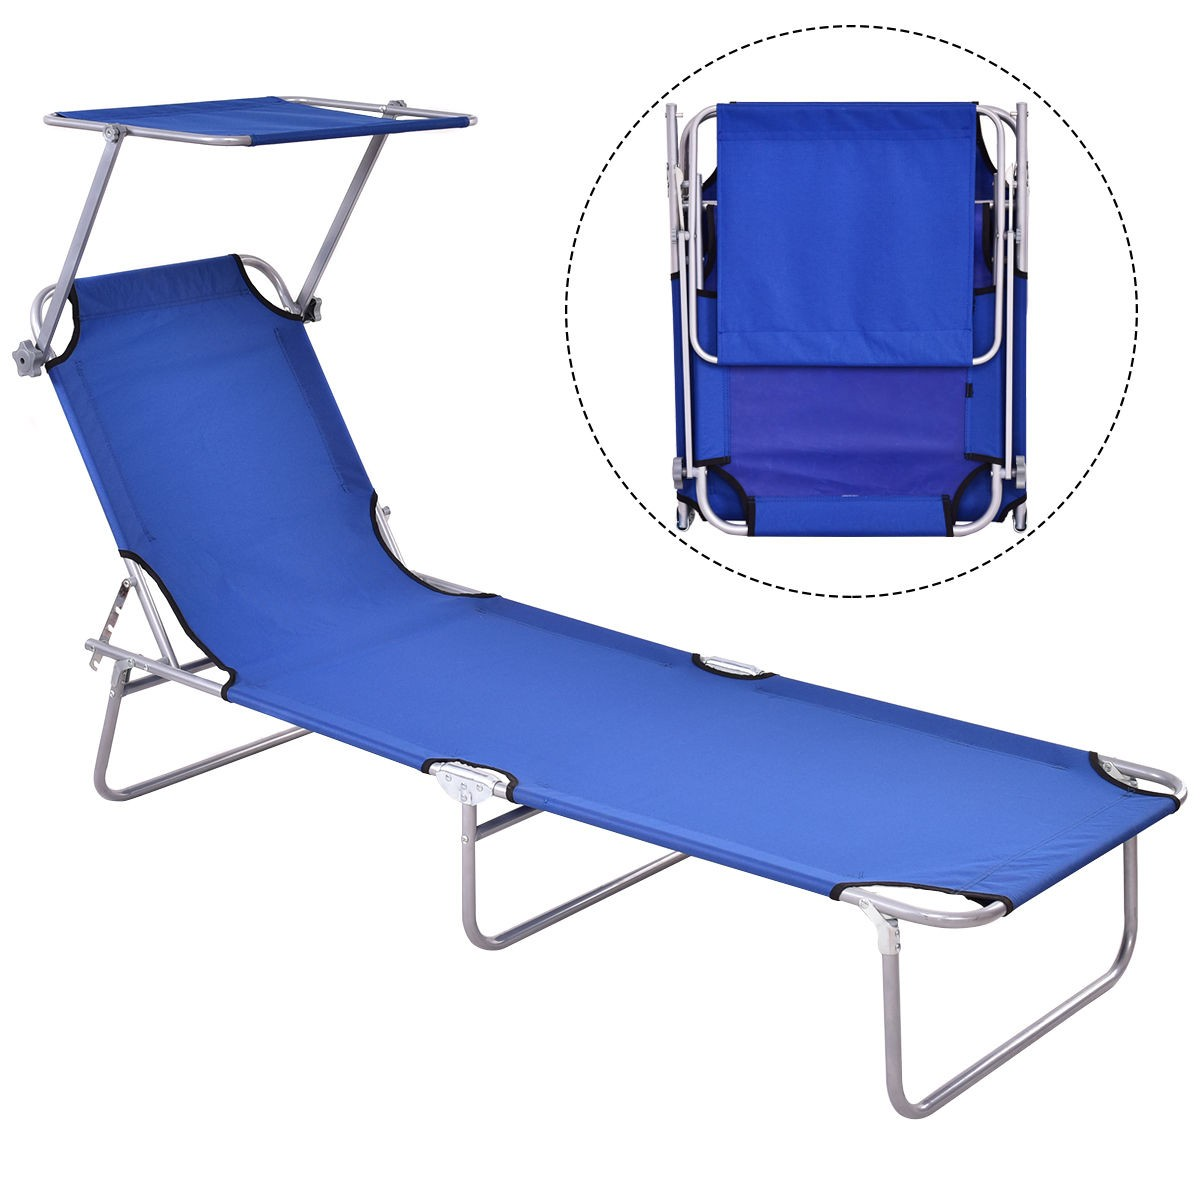 Chaise Lounge Beach Chair Bed Camping